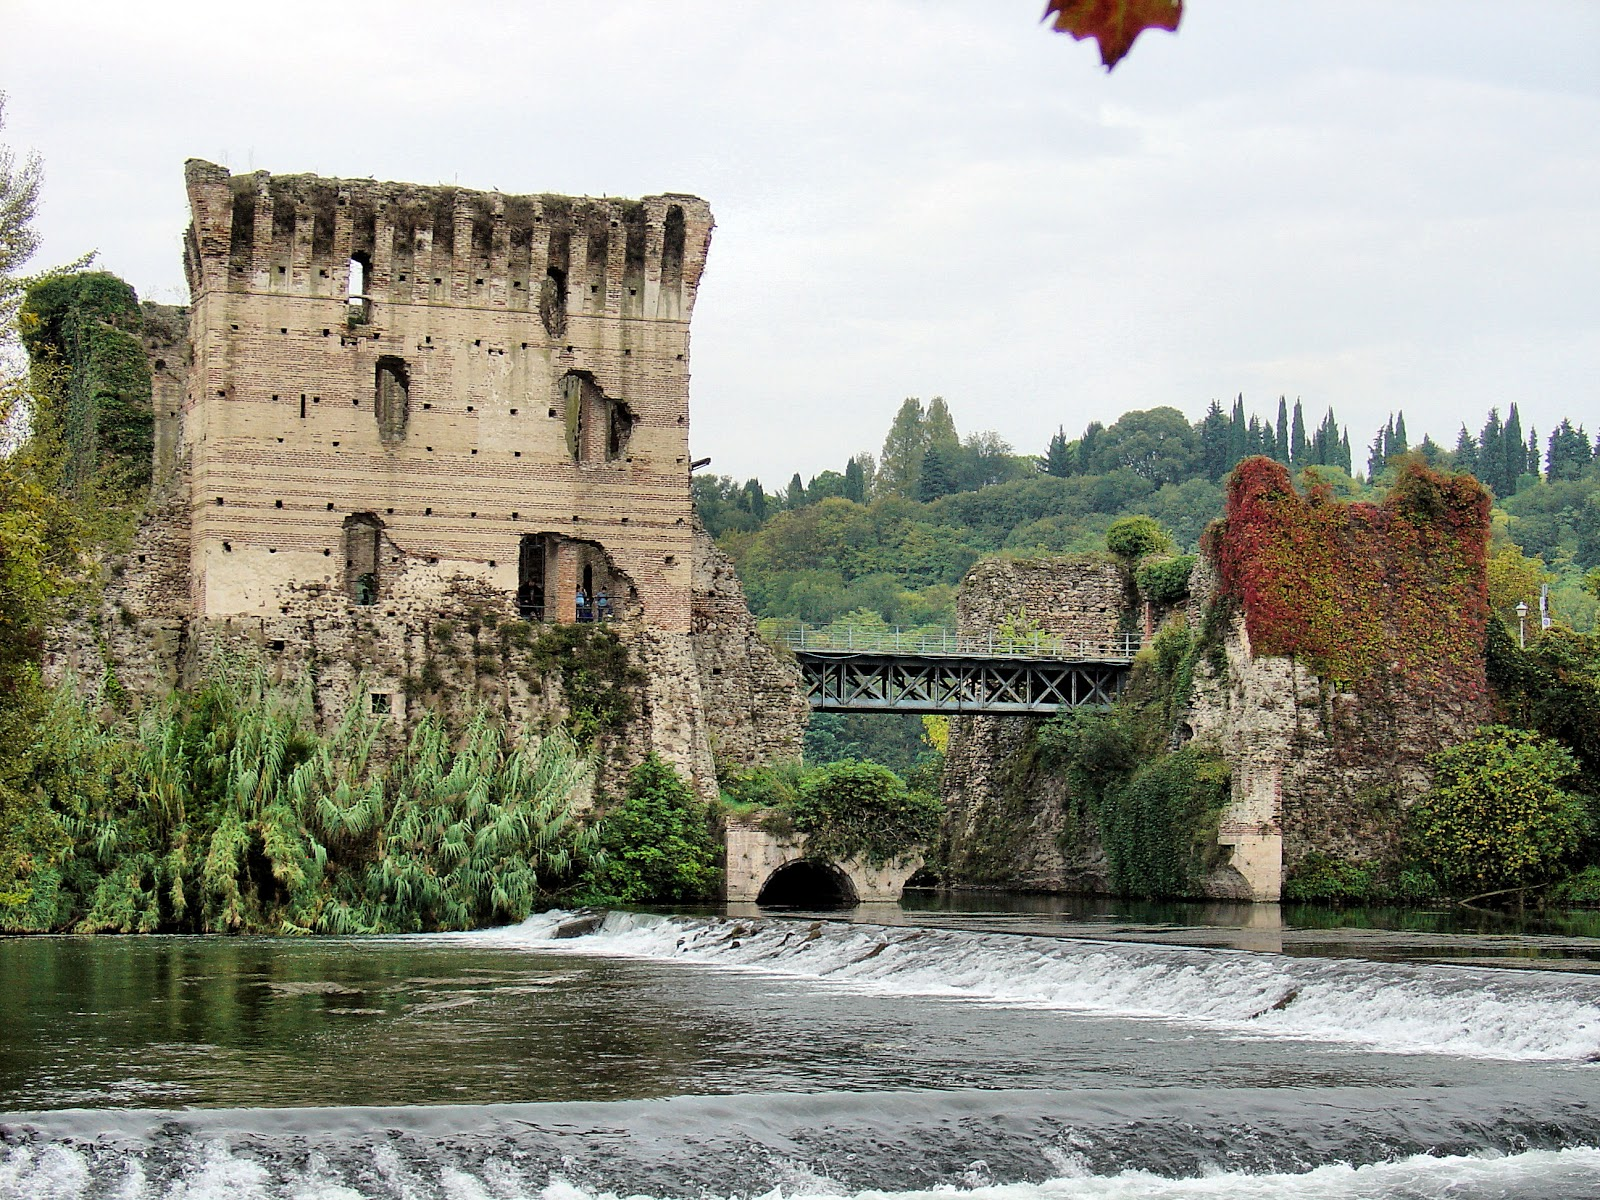 The setting for the Tortellini Festival is the Visconti Bridge and Dam pictured here in Borghetto, Italy